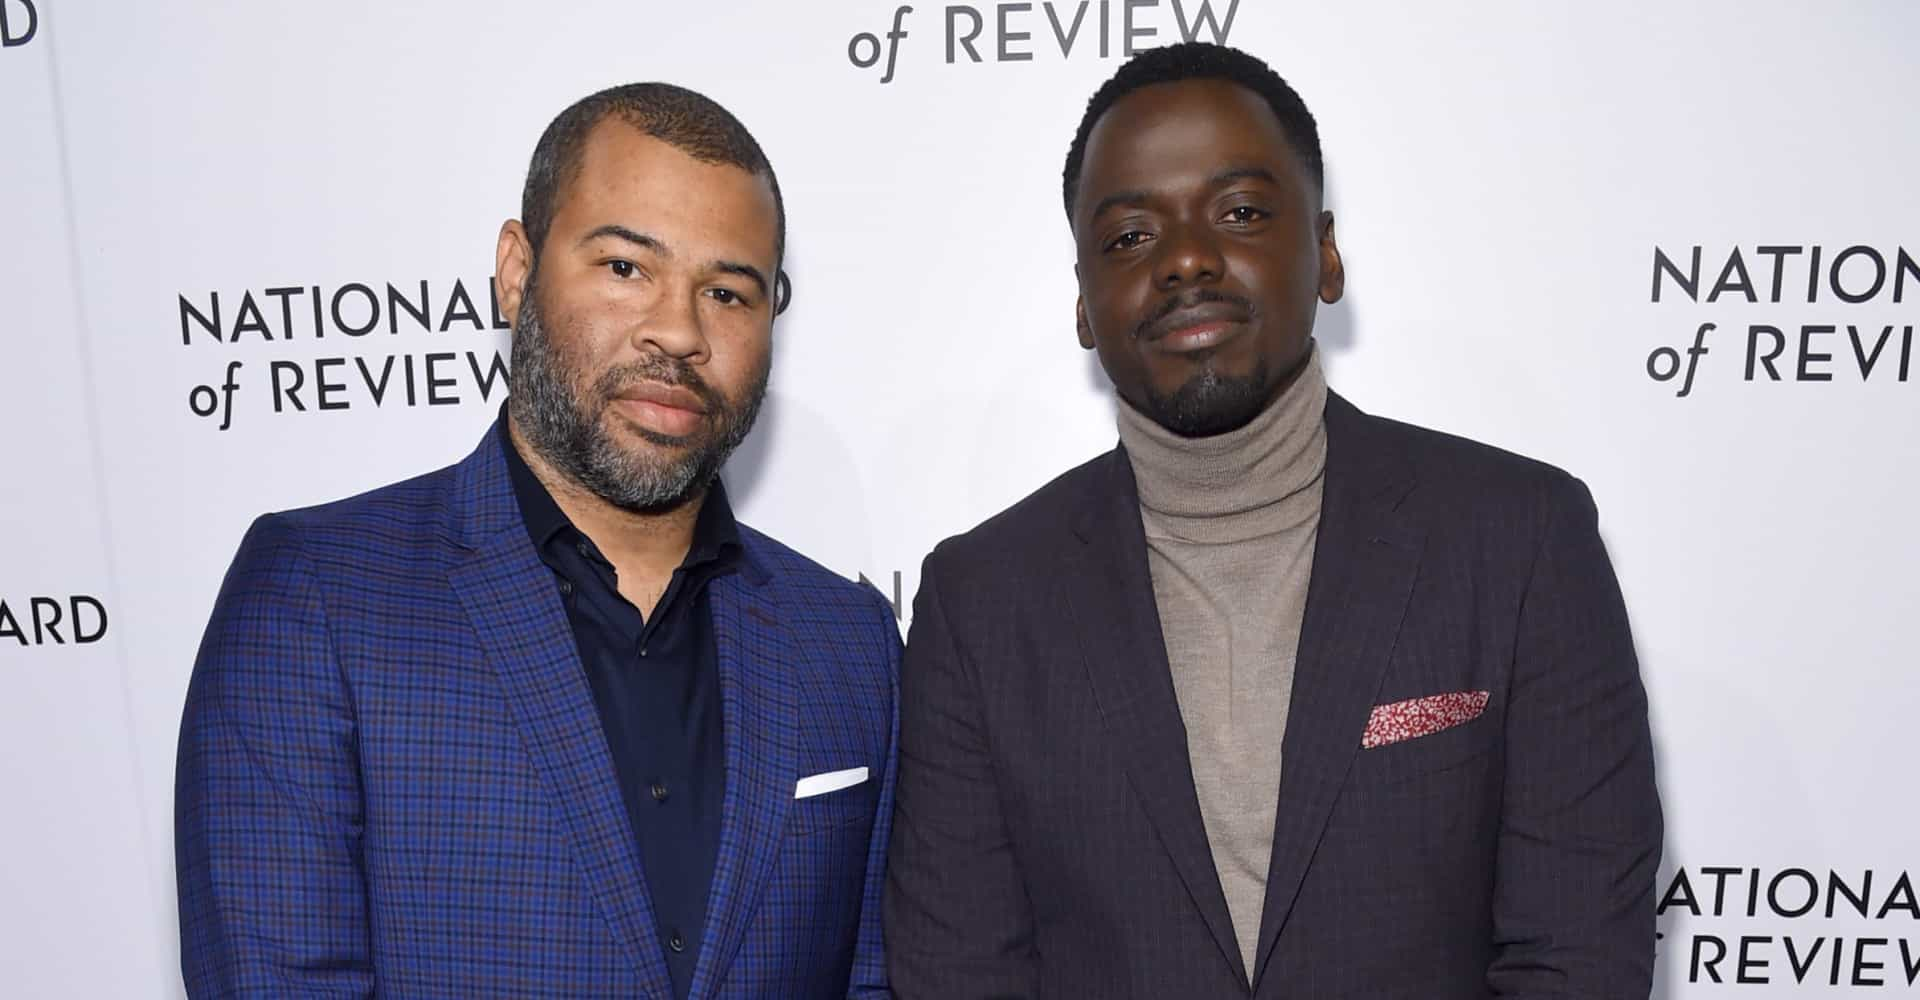 Old Oscar voters blocked 'Get Out' without watching it, investigation shows